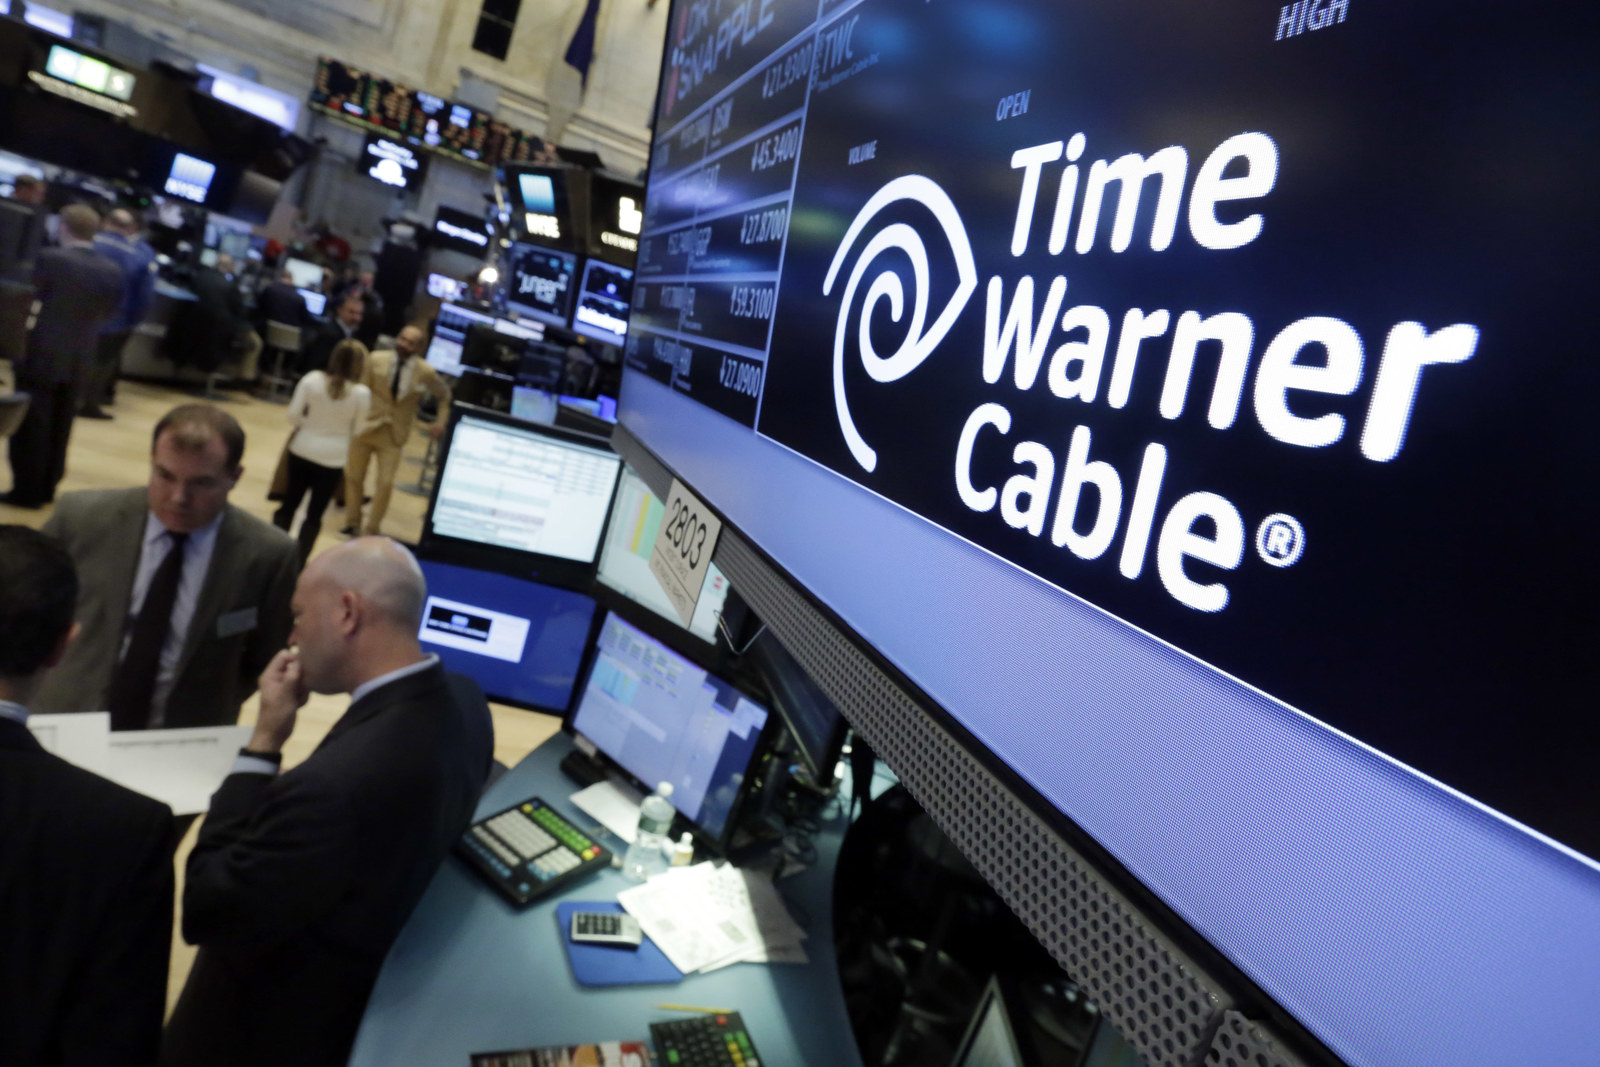 sub buzz 18554 1485966036 10?downsize=715 *&output format=auto&output quality=auto time warner allegedly charged 5 million people for internet speeds Cable TV Wiring Diagram at eliteediting.co